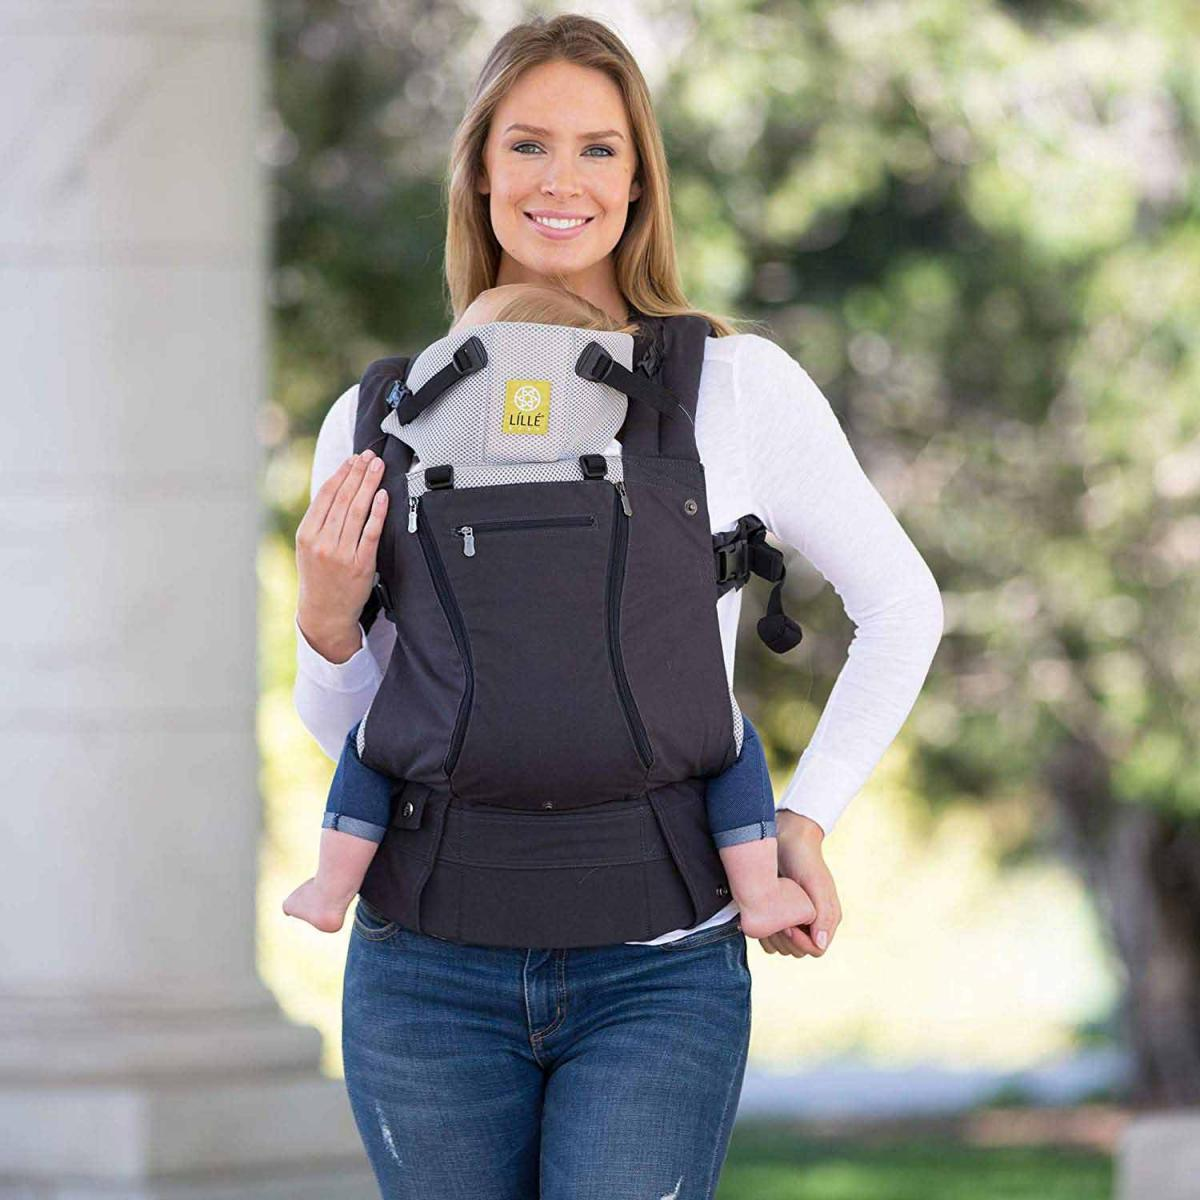 LÍLLÉbaby The COMPLETE All Seasons SIX-Position, 360° Ergonomic Baby & Child Carrier